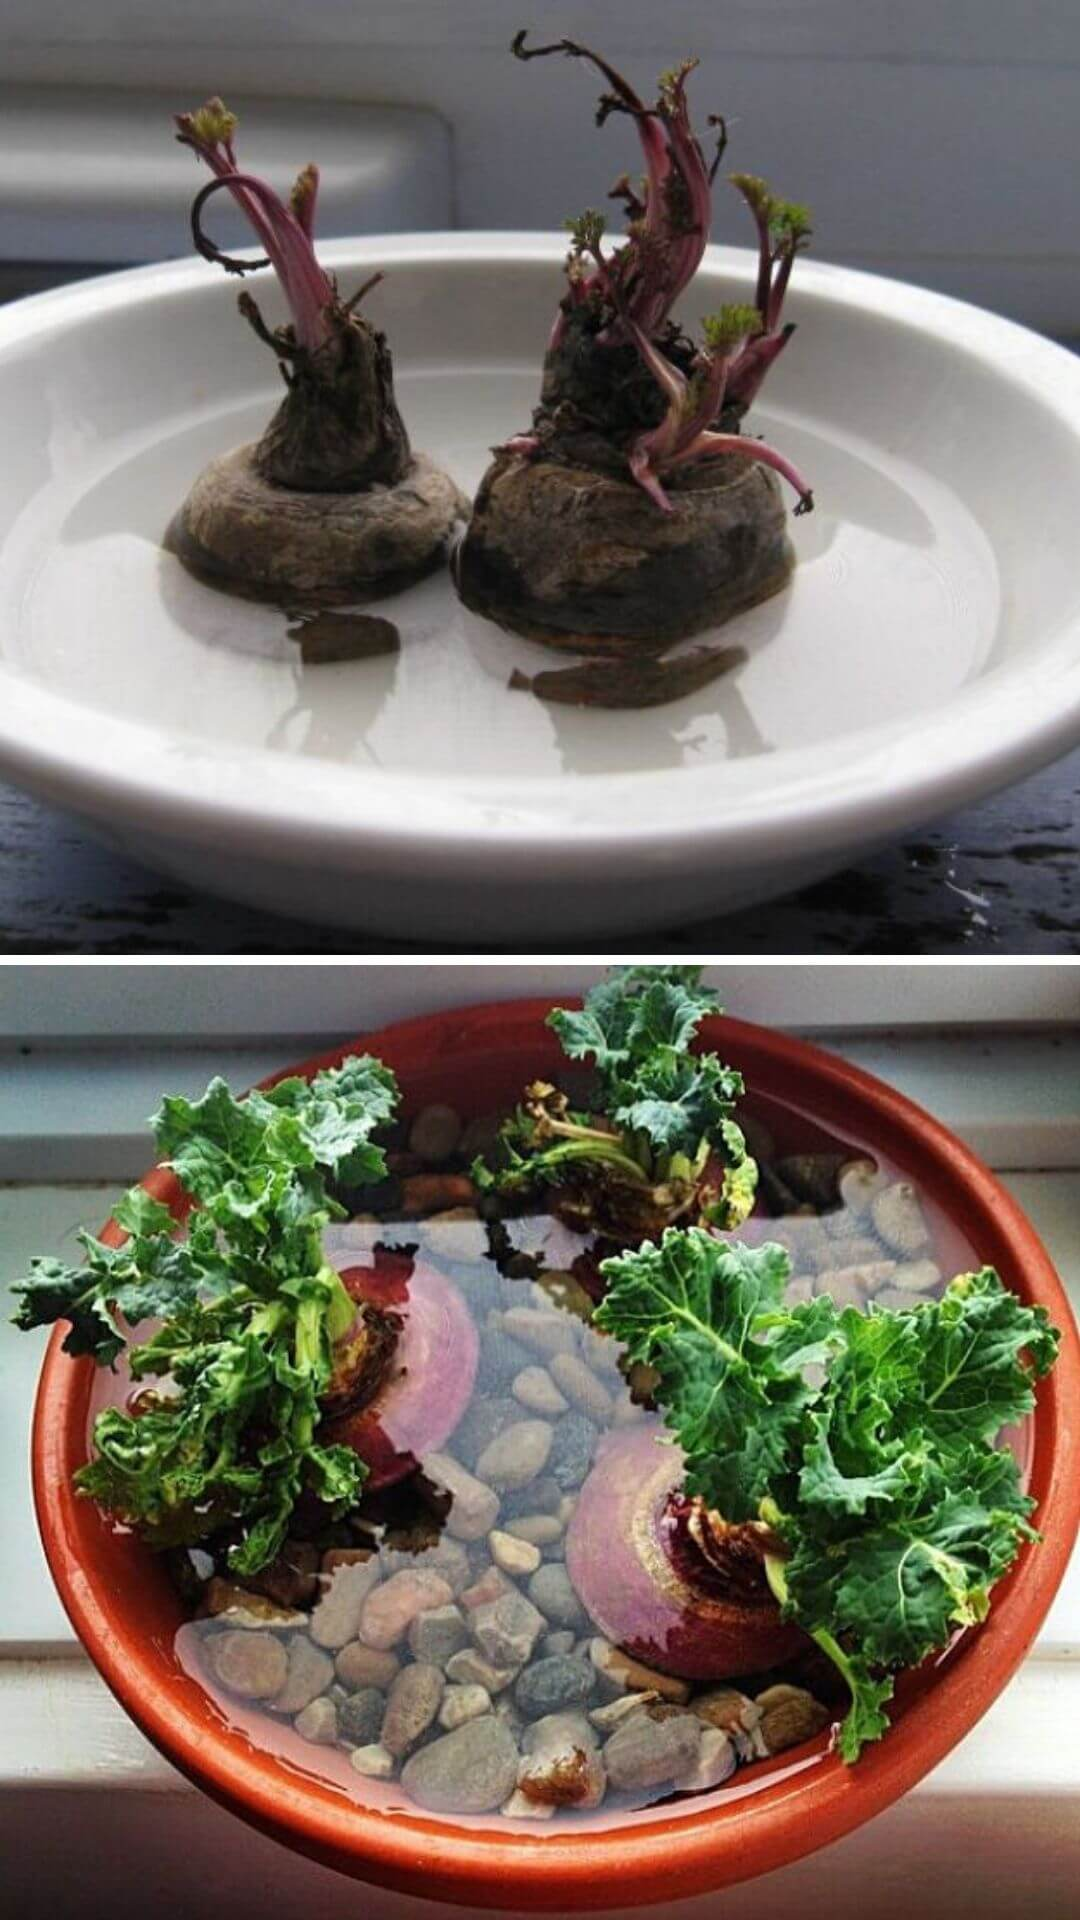 How to grow turnips from kitchen scraps